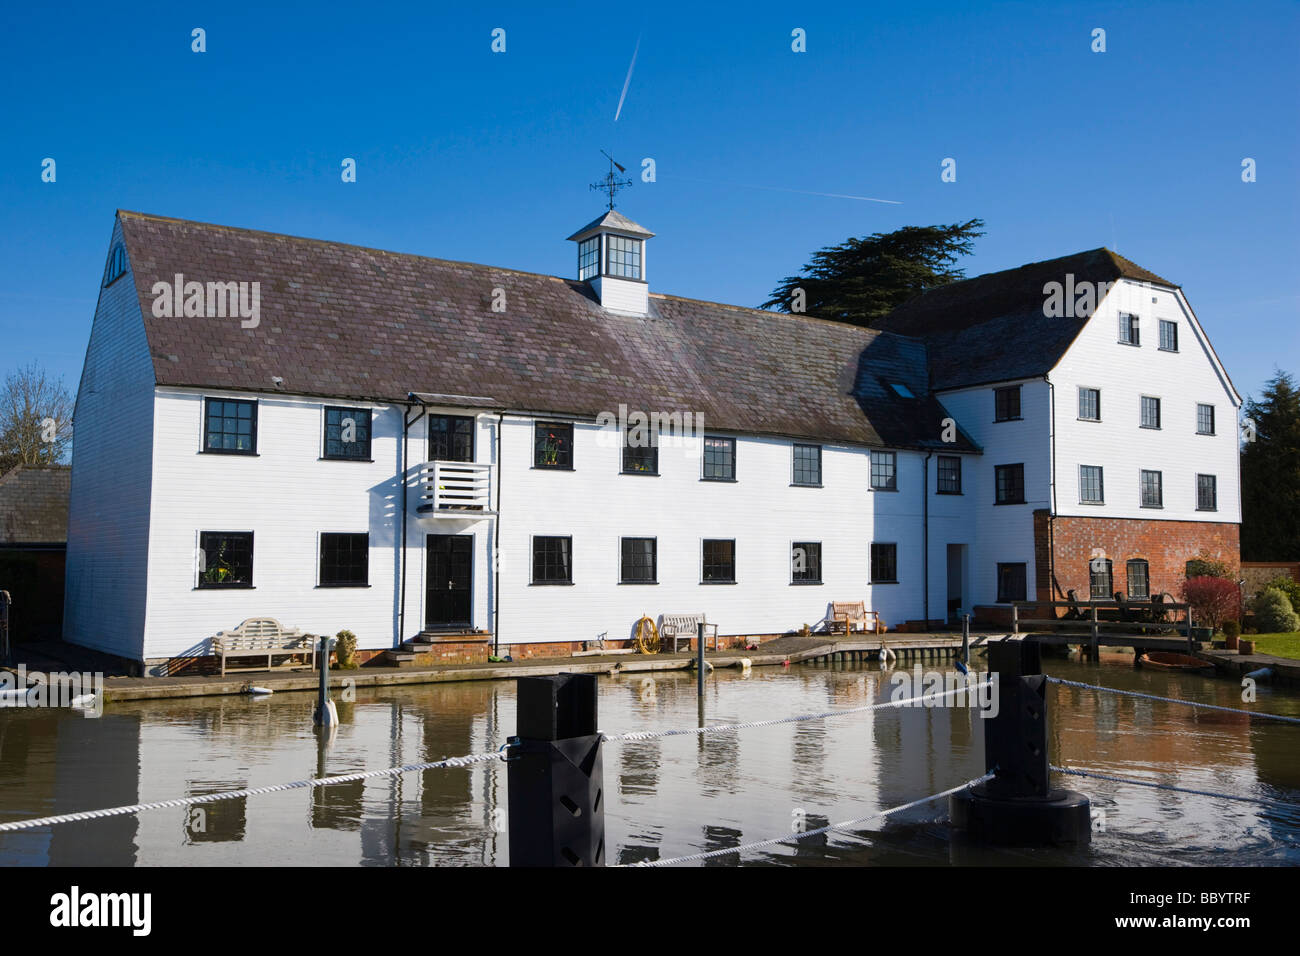 Hambleden Mill downstream of Henley-on-Thames, Oxfordshire, England, United Kingdom, Europe - Stock Image